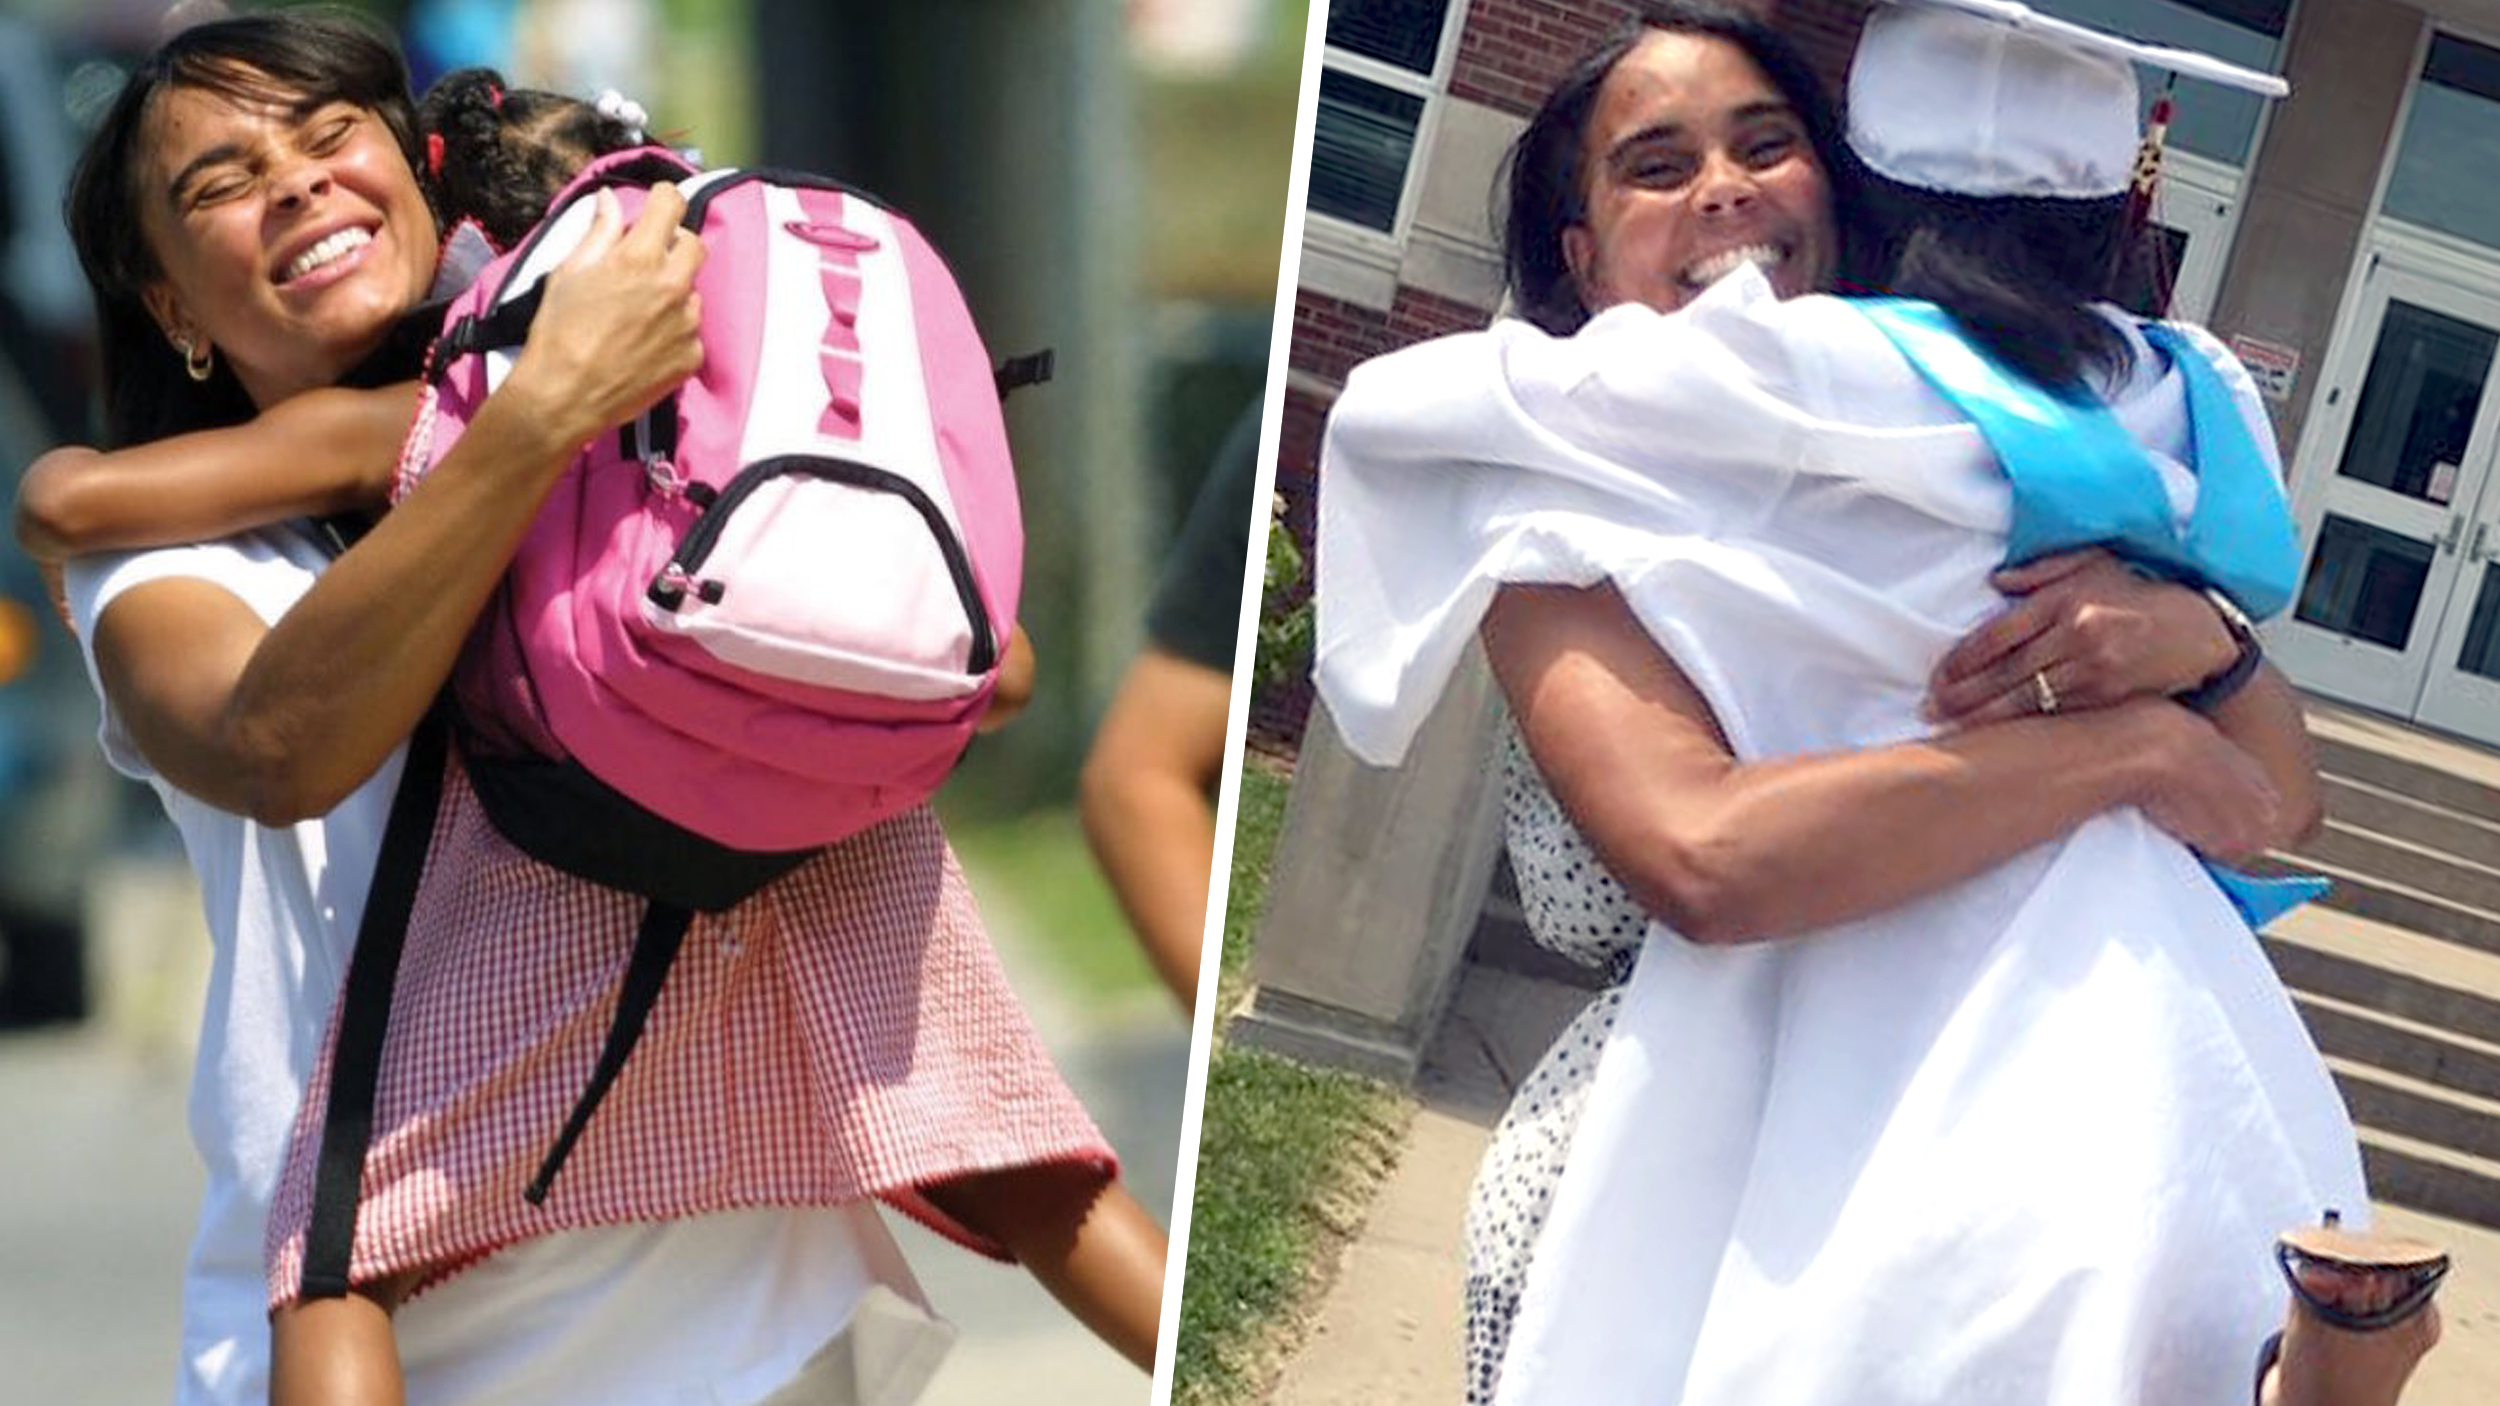 The story behind the viral graduation photo of an 18-year-old and her mother